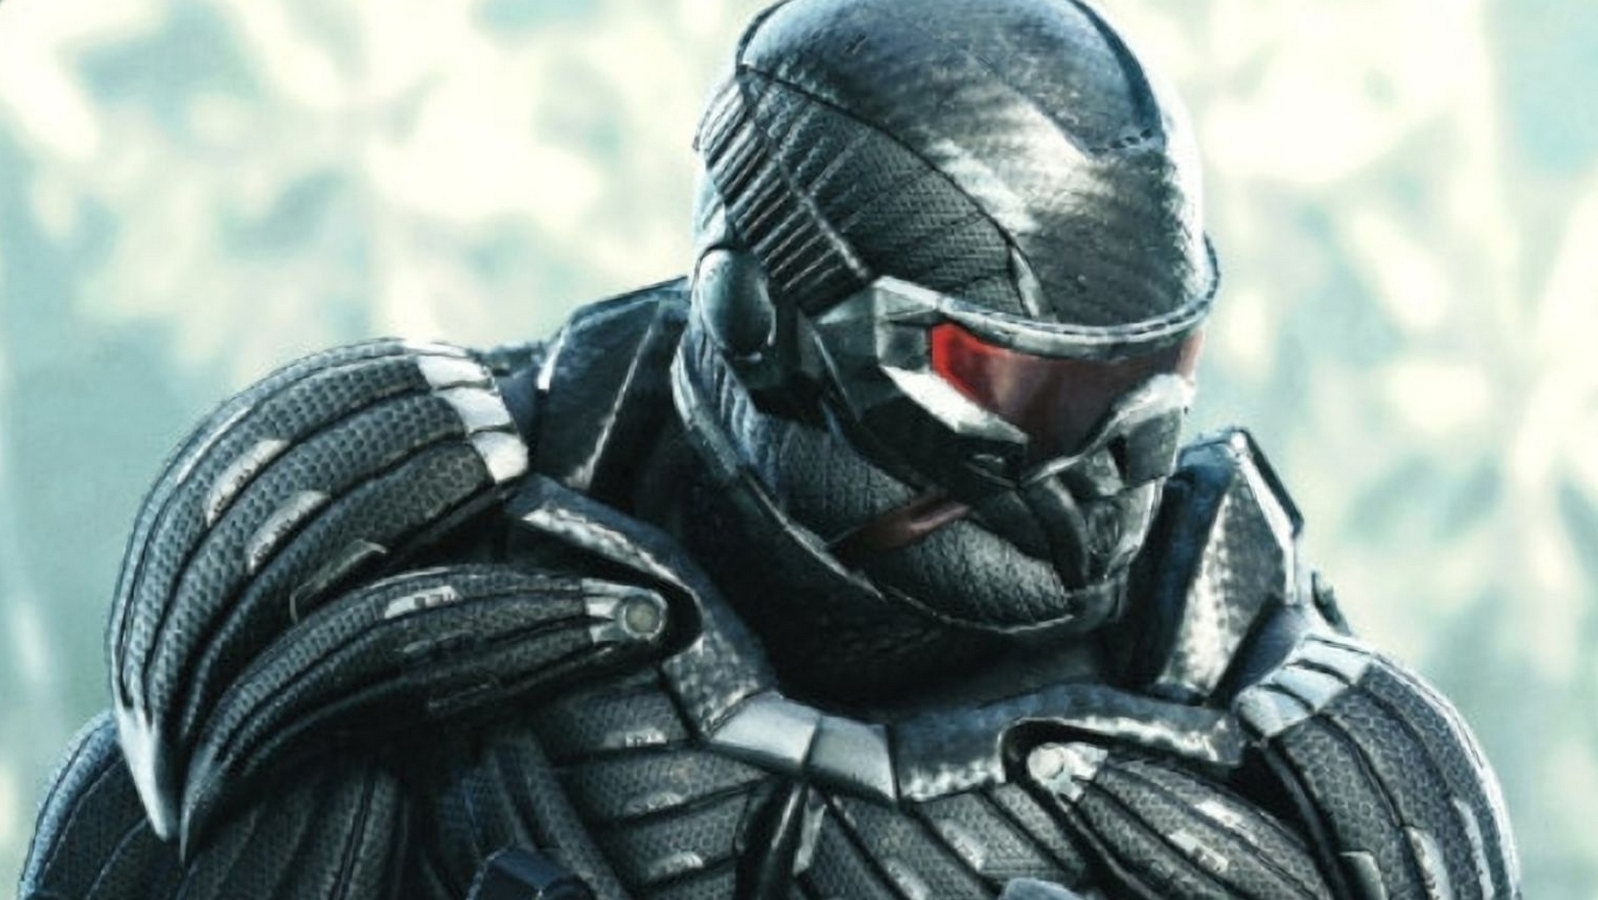 Crysis Remastered - technical review of the PC version